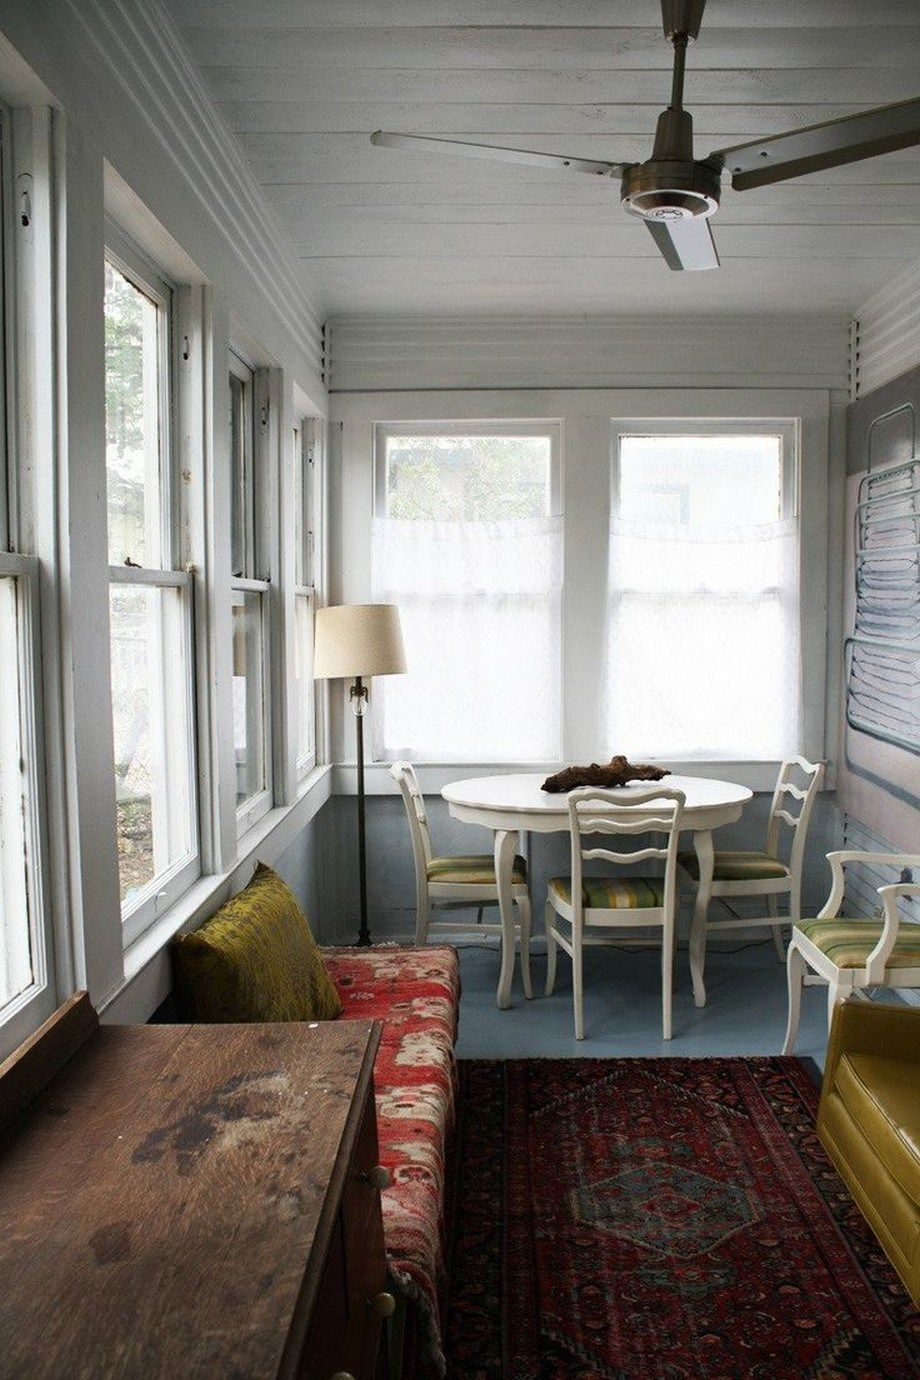 40 Small Enclosed Front Porch Ideas 22 With Images Home Decor